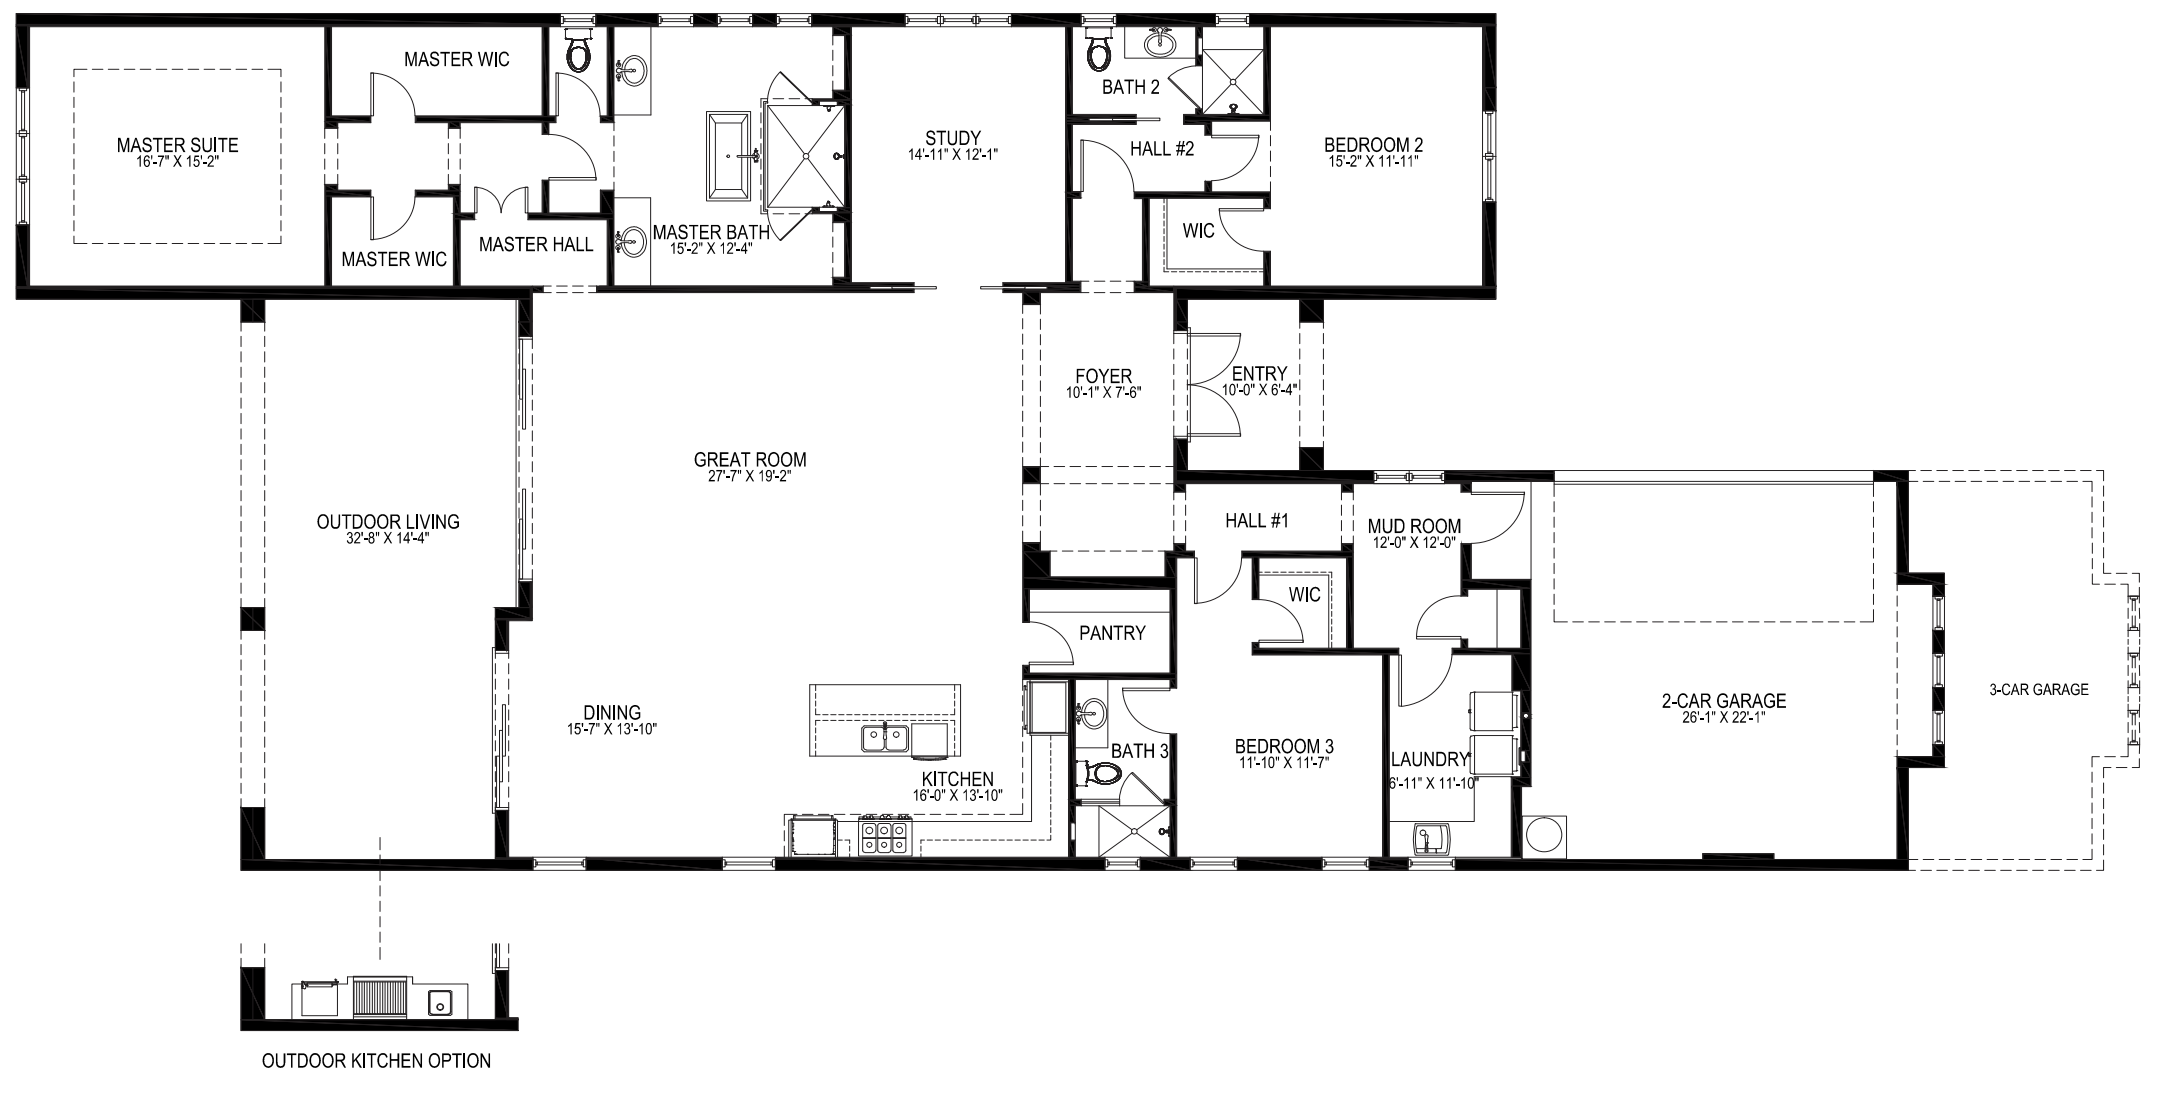 Custom Home Plans Versus Stock Home Plans: What's Right for Me on home of the, home problems, home drawings, home layout, home tiny house, home home, home samples, home estimates, floor plans, home models, house plans, home needs, home floorplans, home kits, home contracts, home cargo, home blueprints, home design, home blog, home building, home planner, home ideas, home designing,